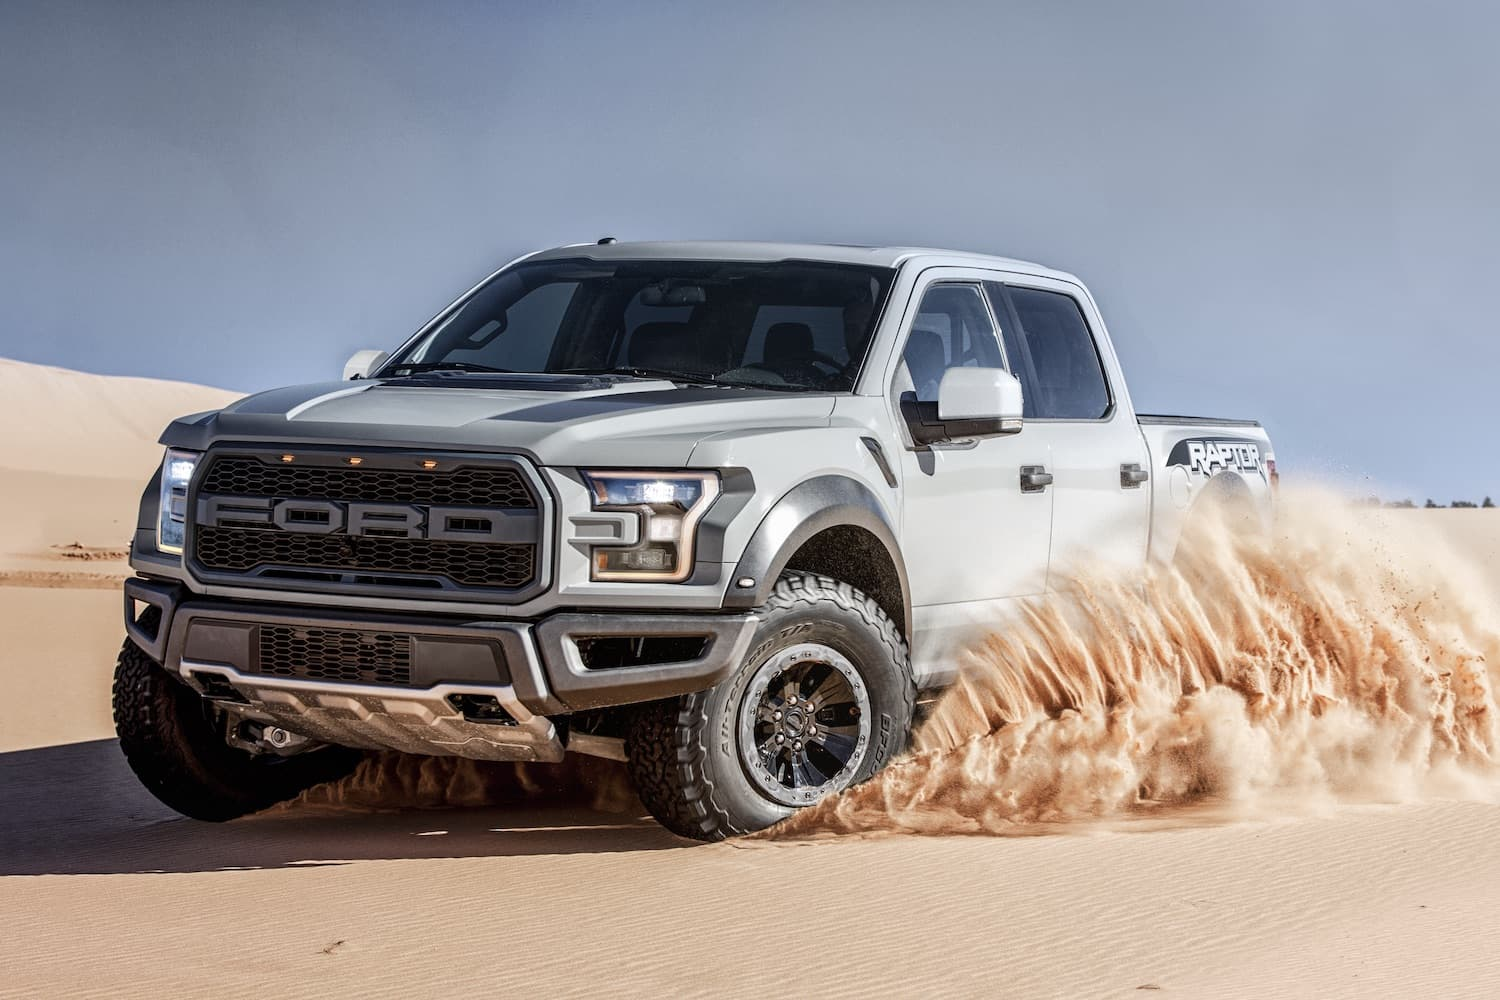 Ford F-150 Raptor Driving Off-Road in The Desert